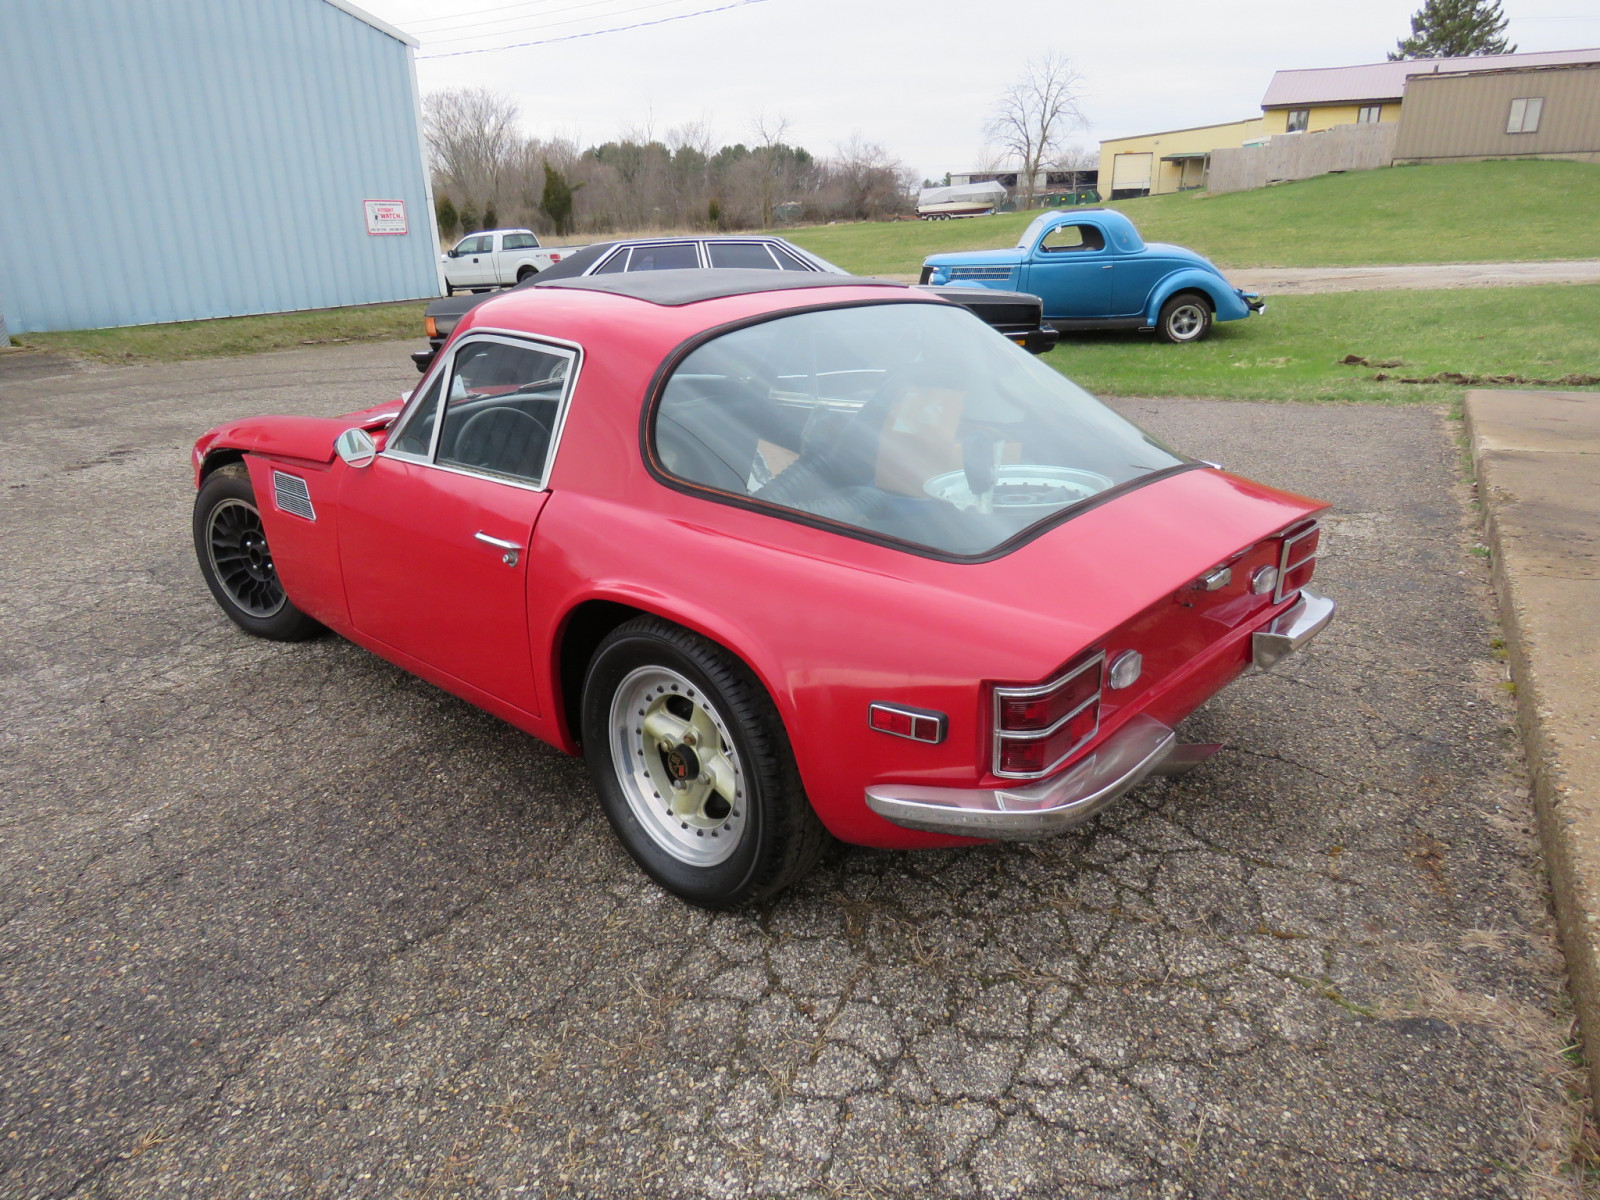 1972 TVR 2500M Coupe - Image 12